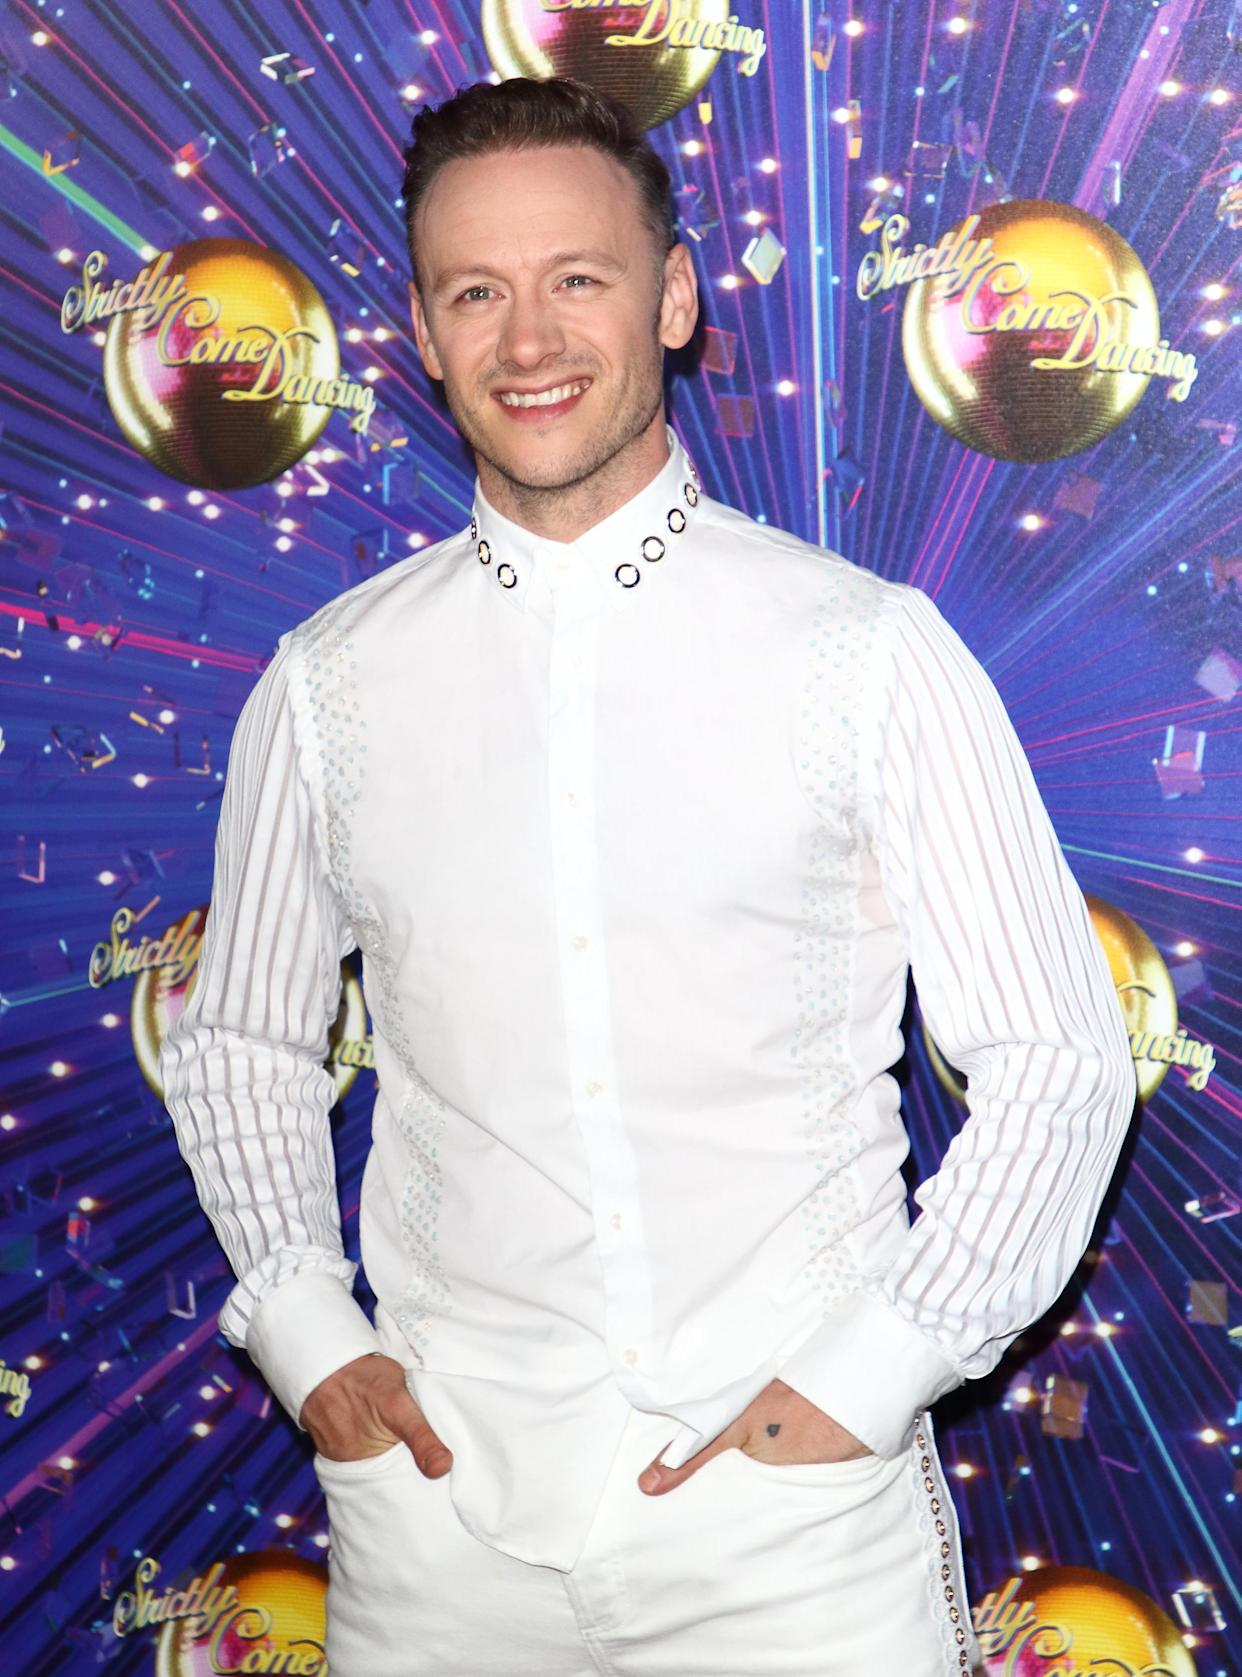 LONDON, UNITED KINGDOM - 2019/08/26: Kevin Clifton at the Strictly Come Dancing Launch at BBC Broadcasting House in London. (Photo by Keith Mayhew/SOPA Images/LightRocket via Getty Images)